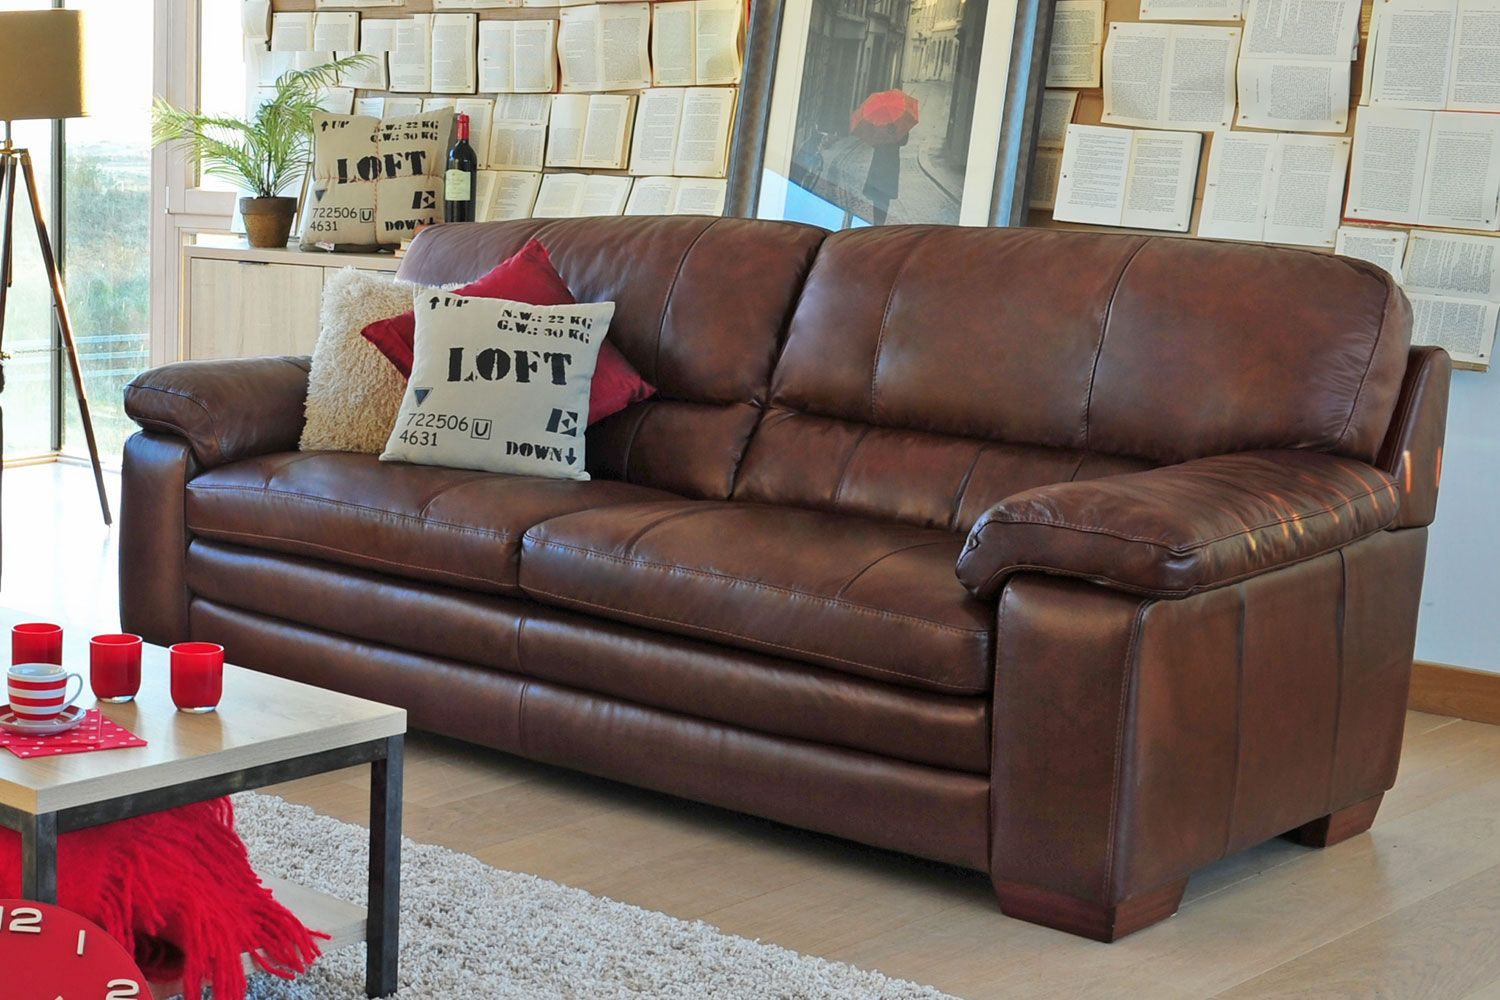 Sofa Sale Harveys Harvey Norman York Sofa Bed With Chaise